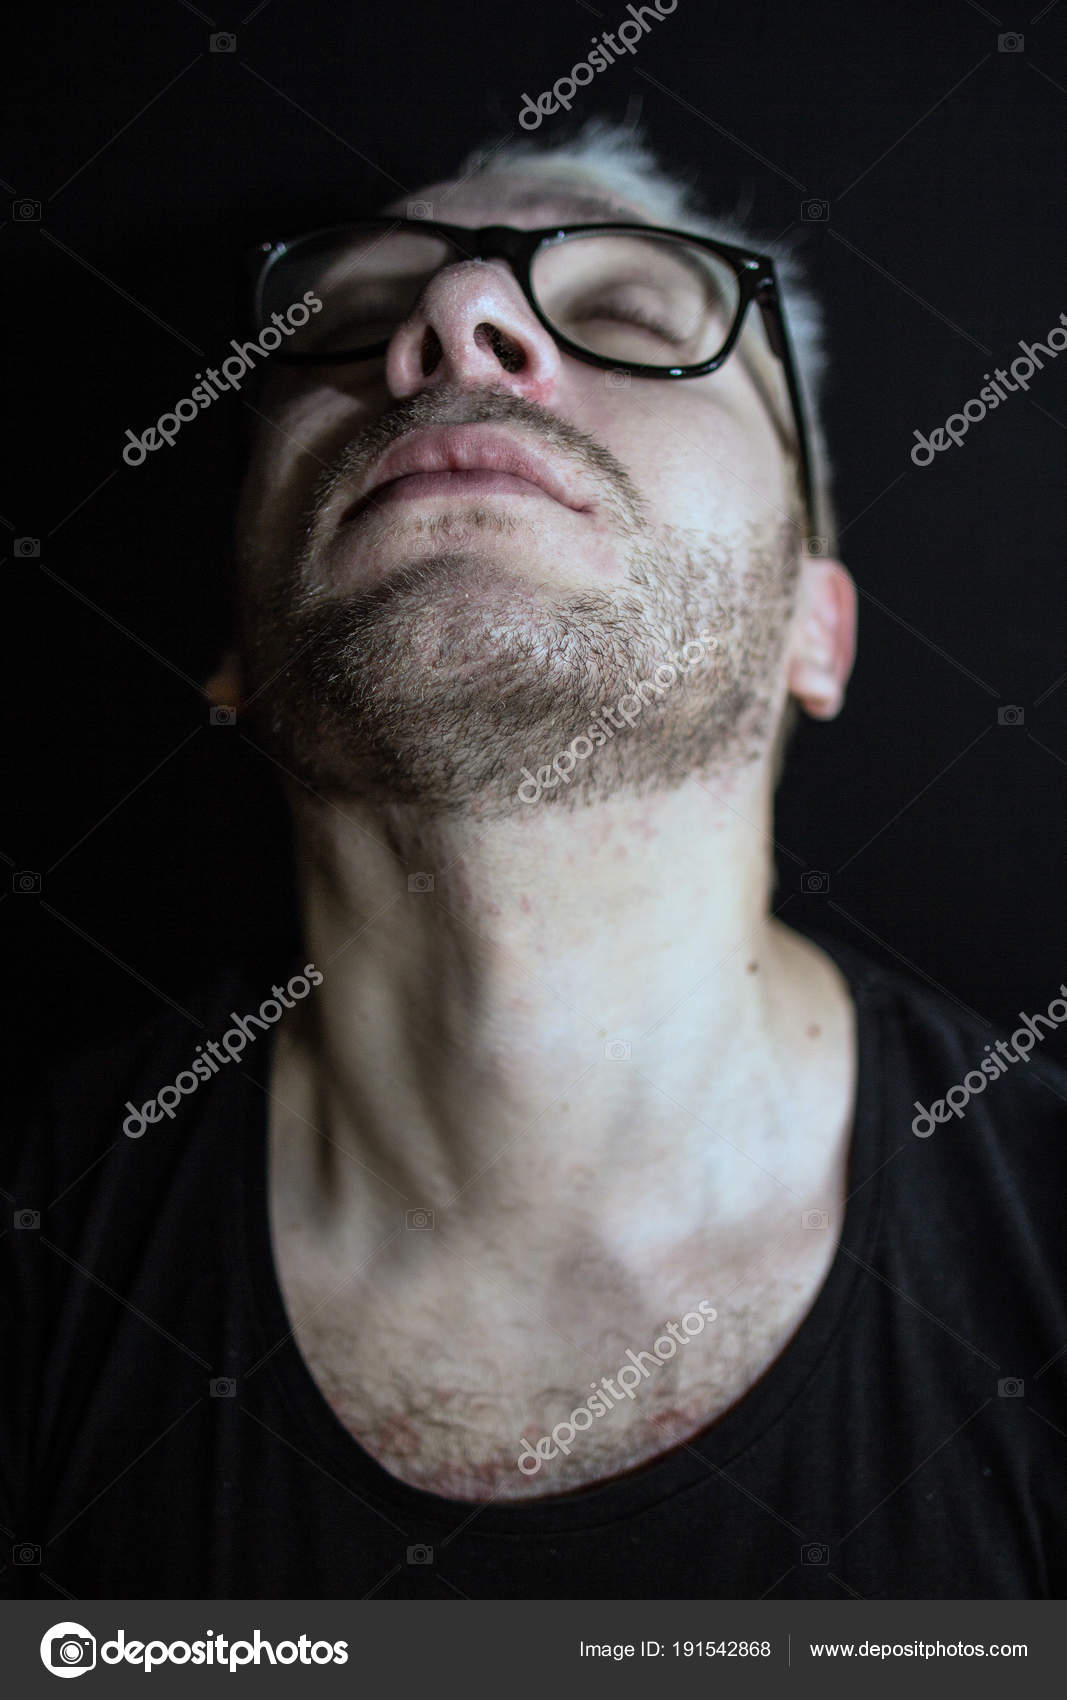 5052202bb4a7 A portrait of a man with black glasses. A man with closed eyes. portrait of a  man with a raised head on a black background.– stock image